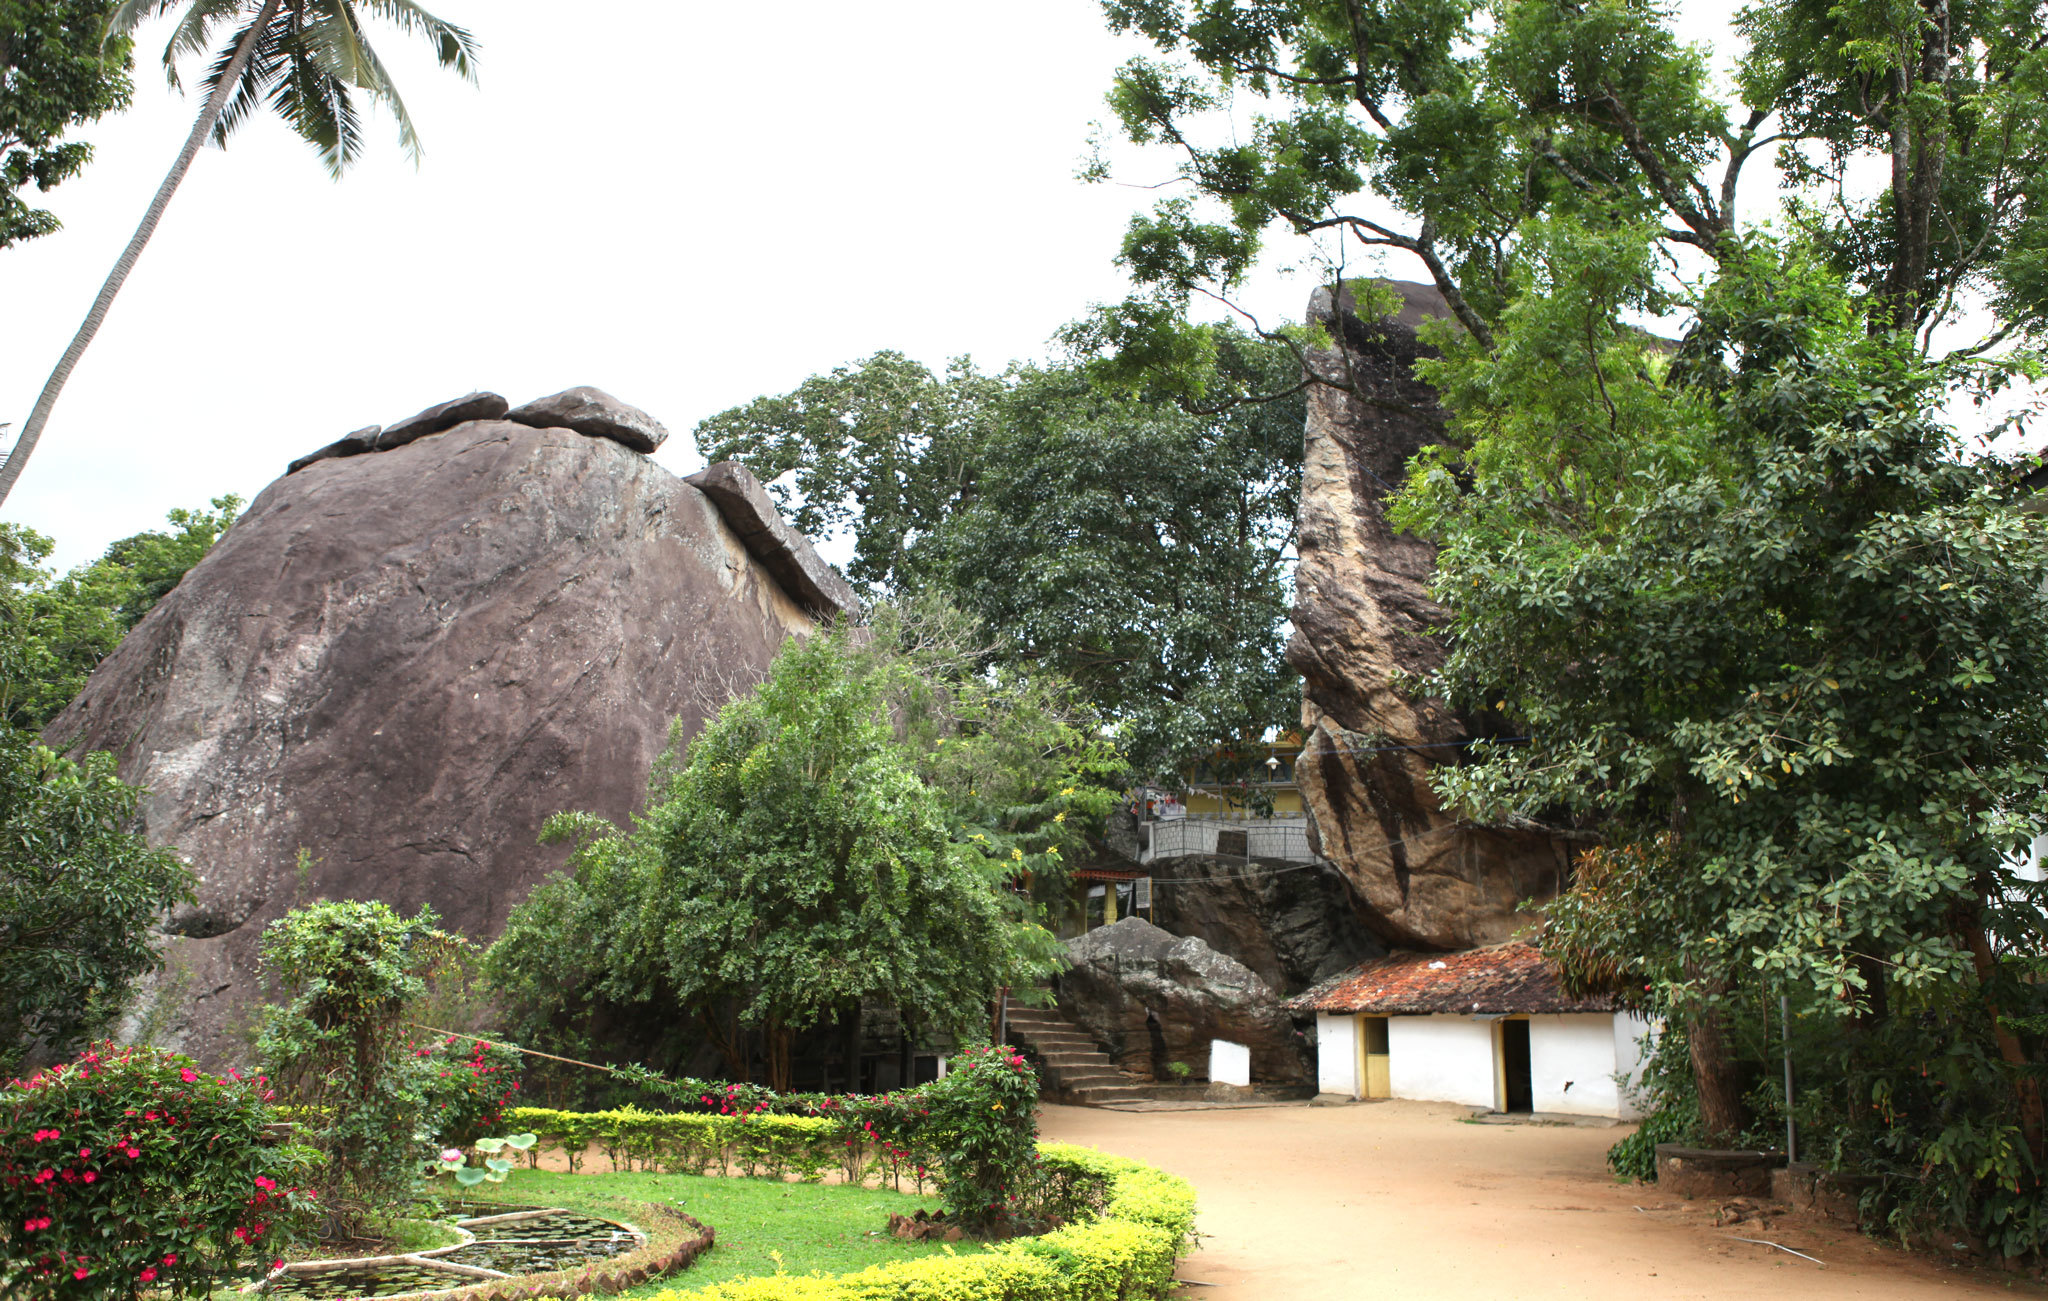 Aluviharaya Rock Temple